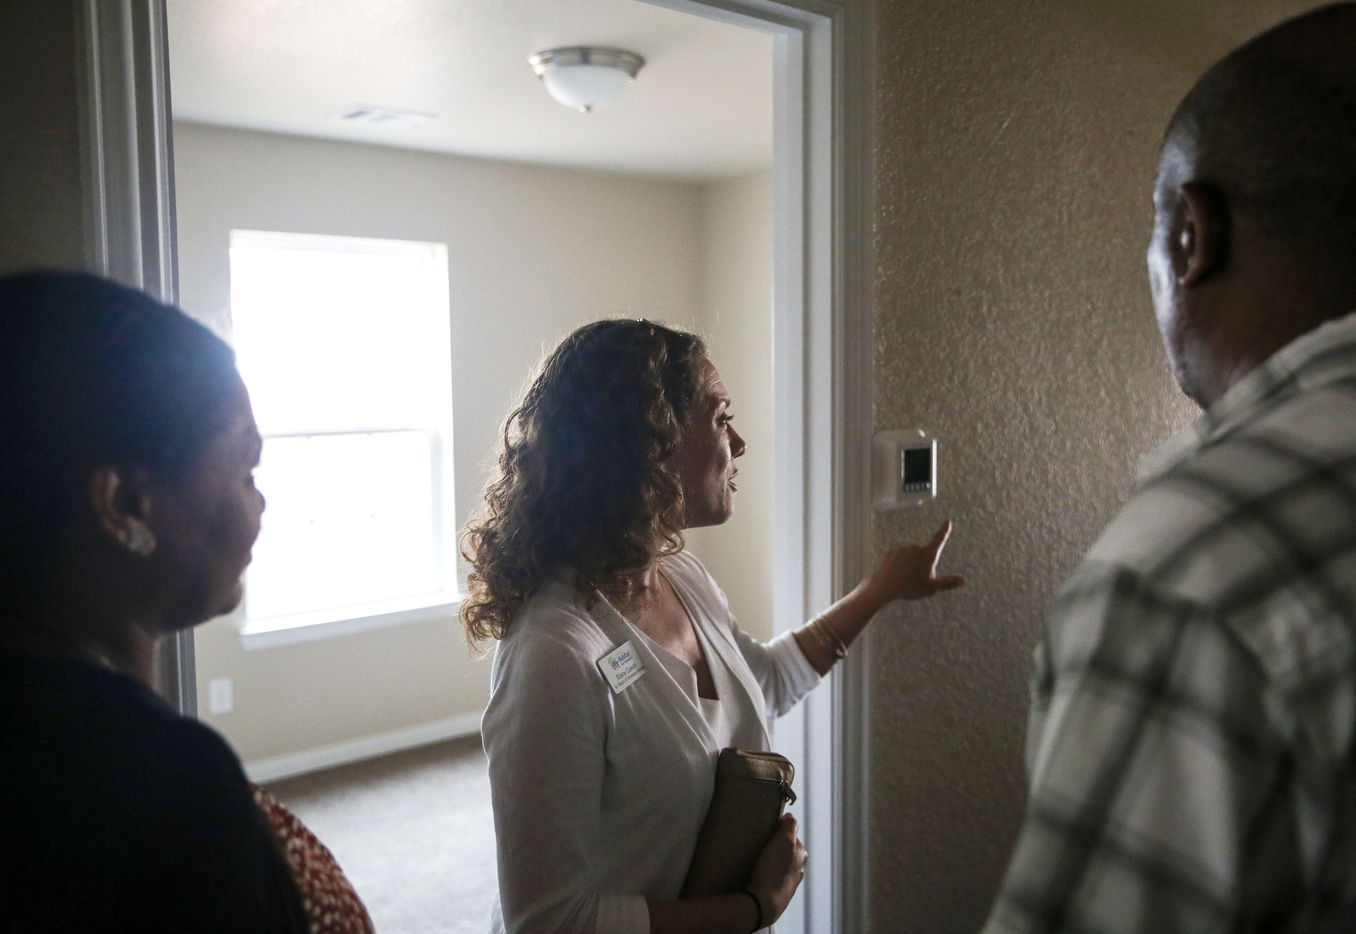 Habitat for Humanity Senior Director of Home Owner Services Blaine Cowart, center, shows new homeowners Tequadesh Eshibelachew, left, and Terefe Bezabeh how to use a programable thermostat during a walk through their Habitat for Humanity built West Dallas home Thursday, Aug. 8, 2019 in Dallas.